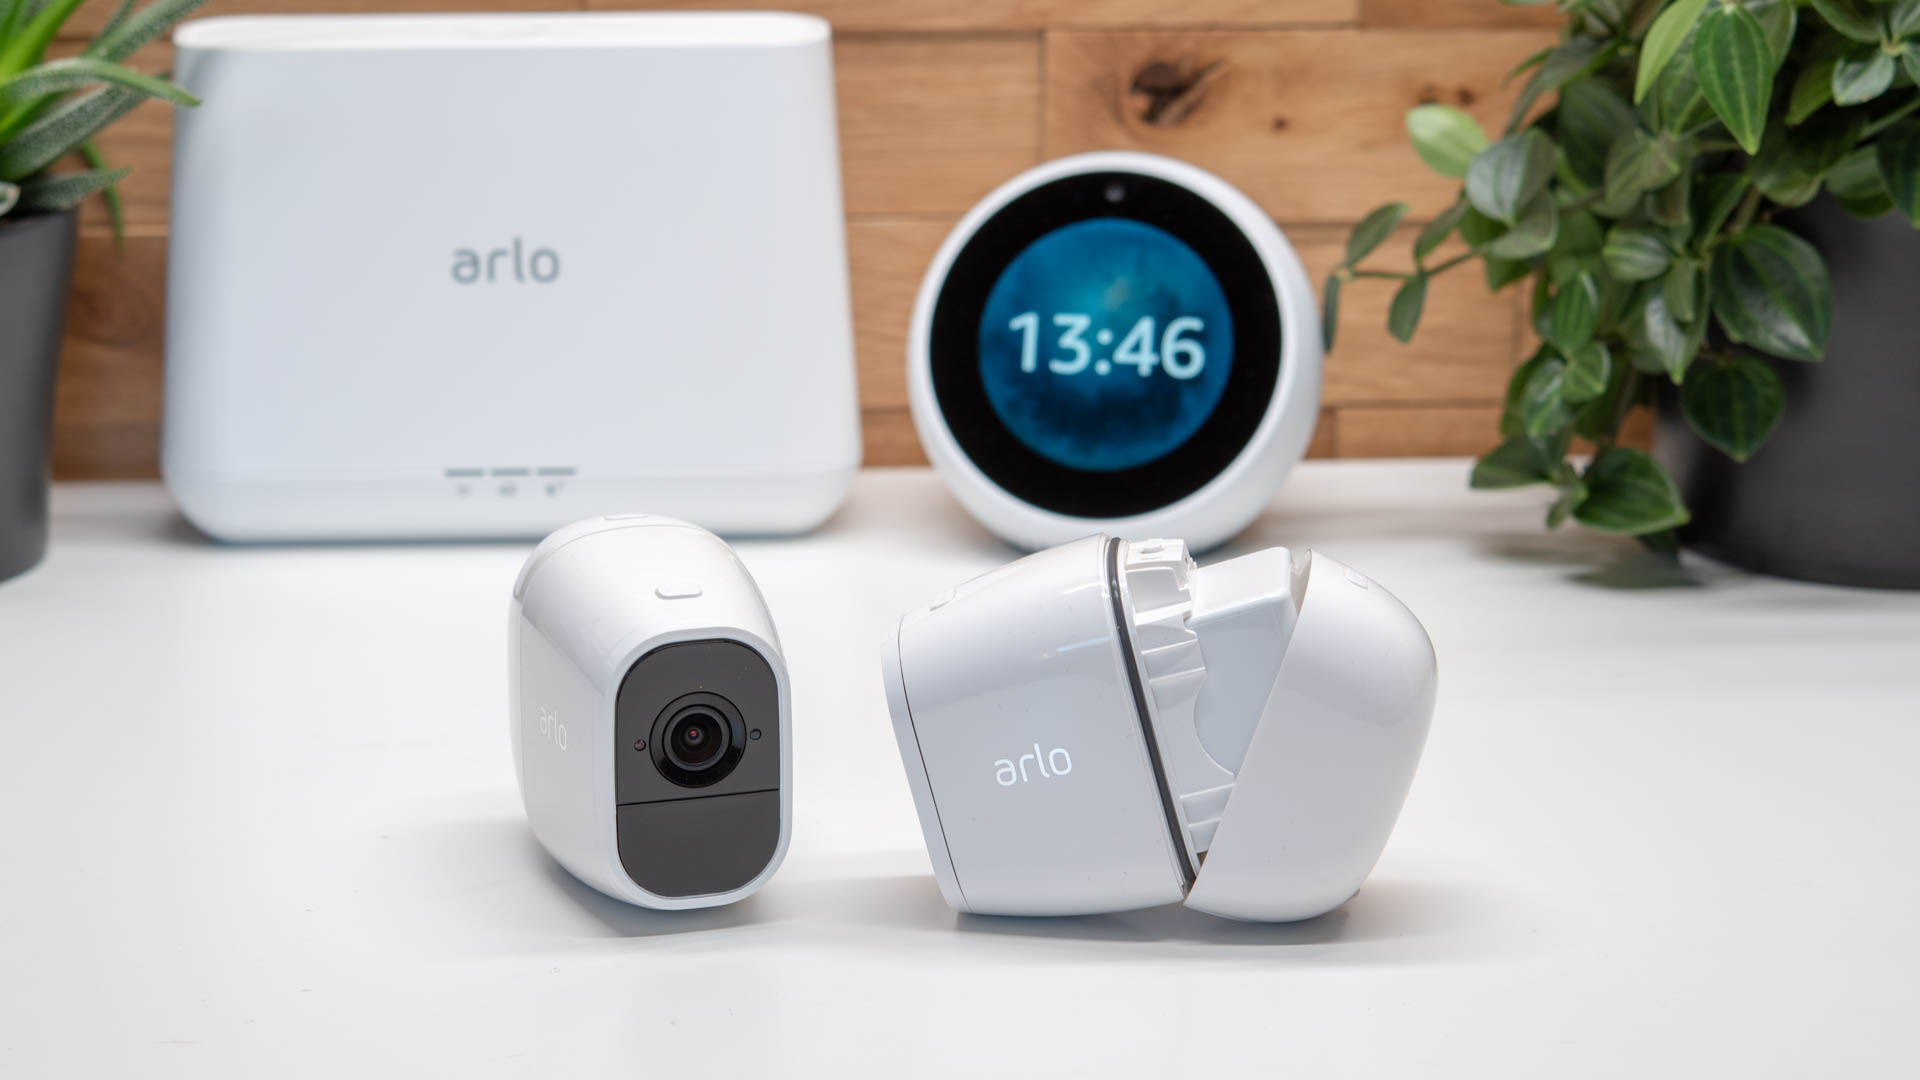 die arlo pro 2 im test die beste kabellose berwachungskamera weiterentwickelt techtest. Black Bedroom Furniture Sets. Home Design Ideas